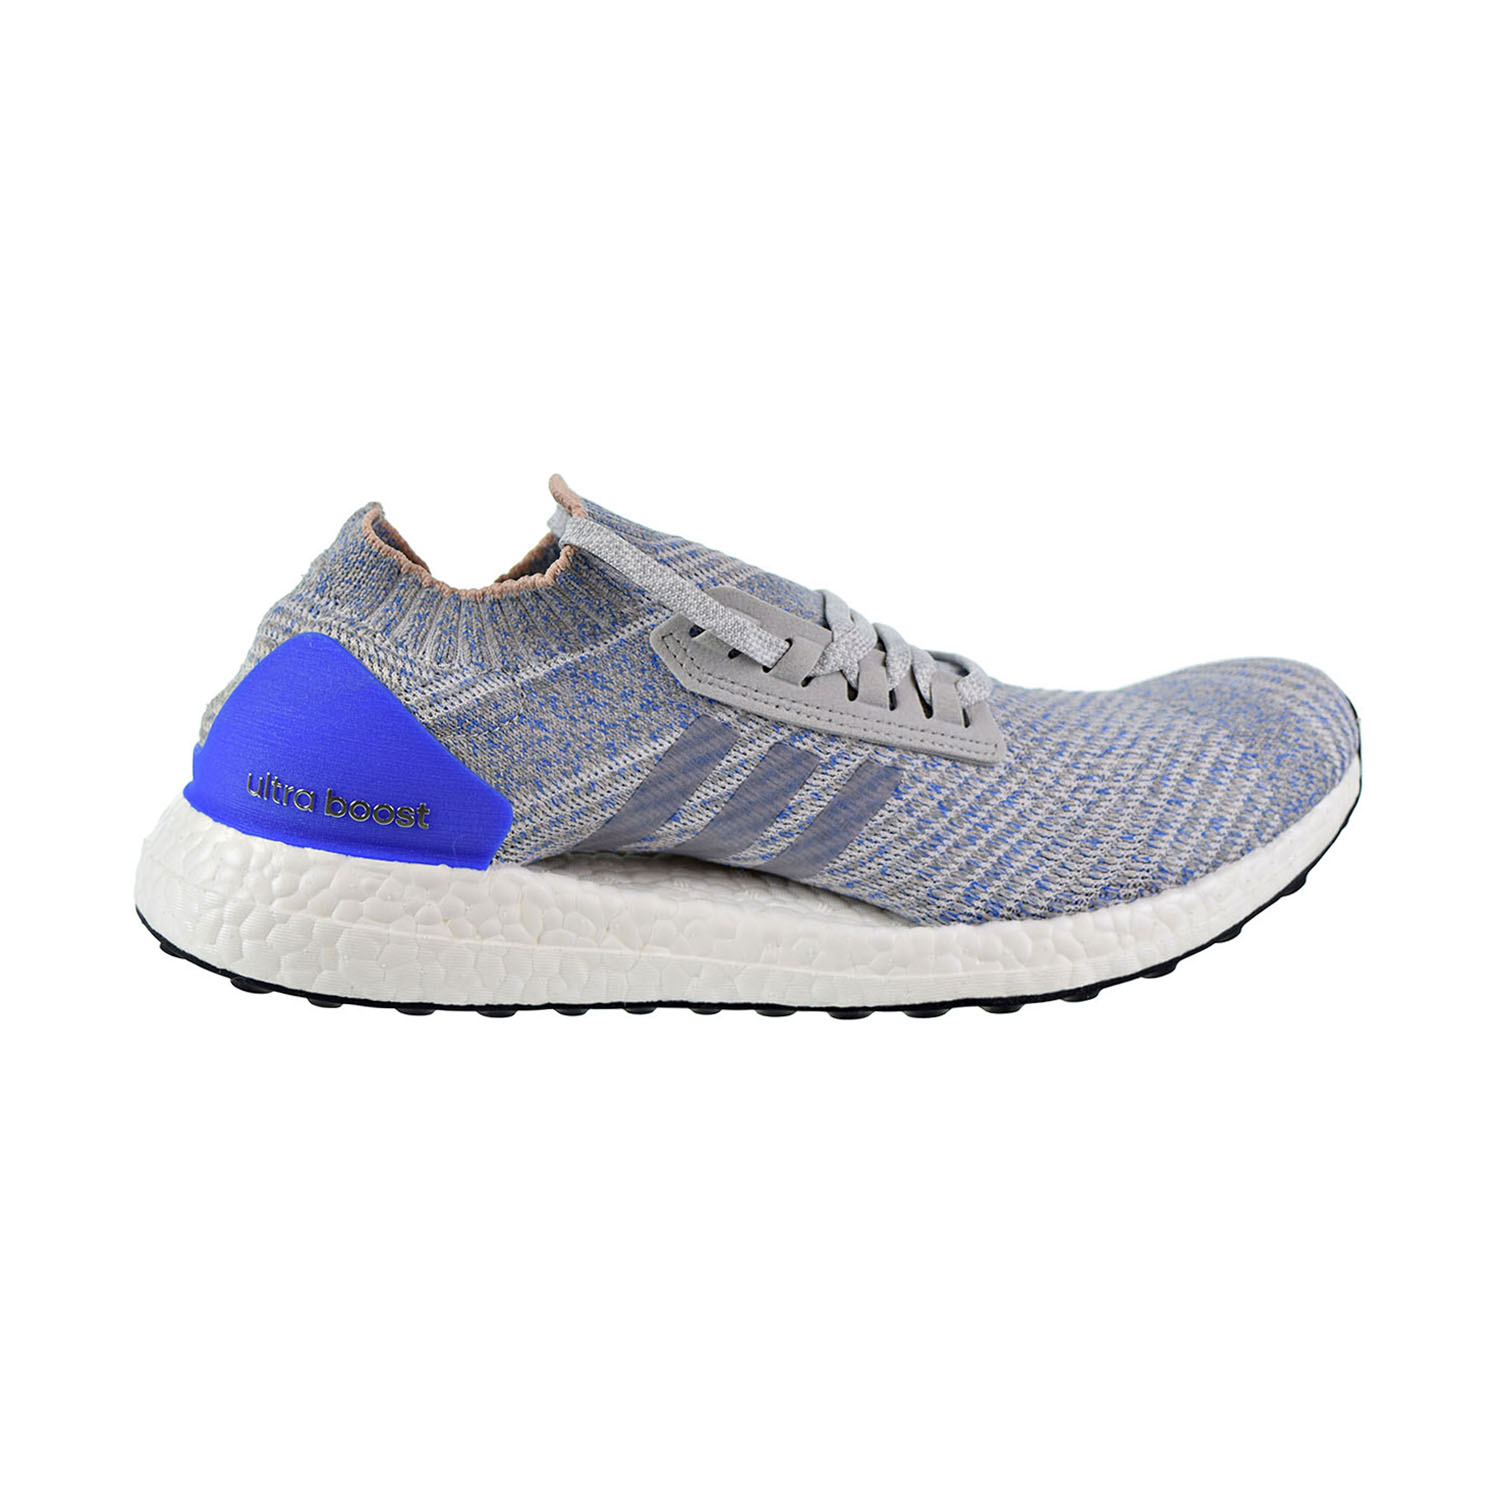 c302963ffda Details about Adidas Ultraboost X Women s Shoes Grey Two Grey Two Hi-Res  Blue BB6155